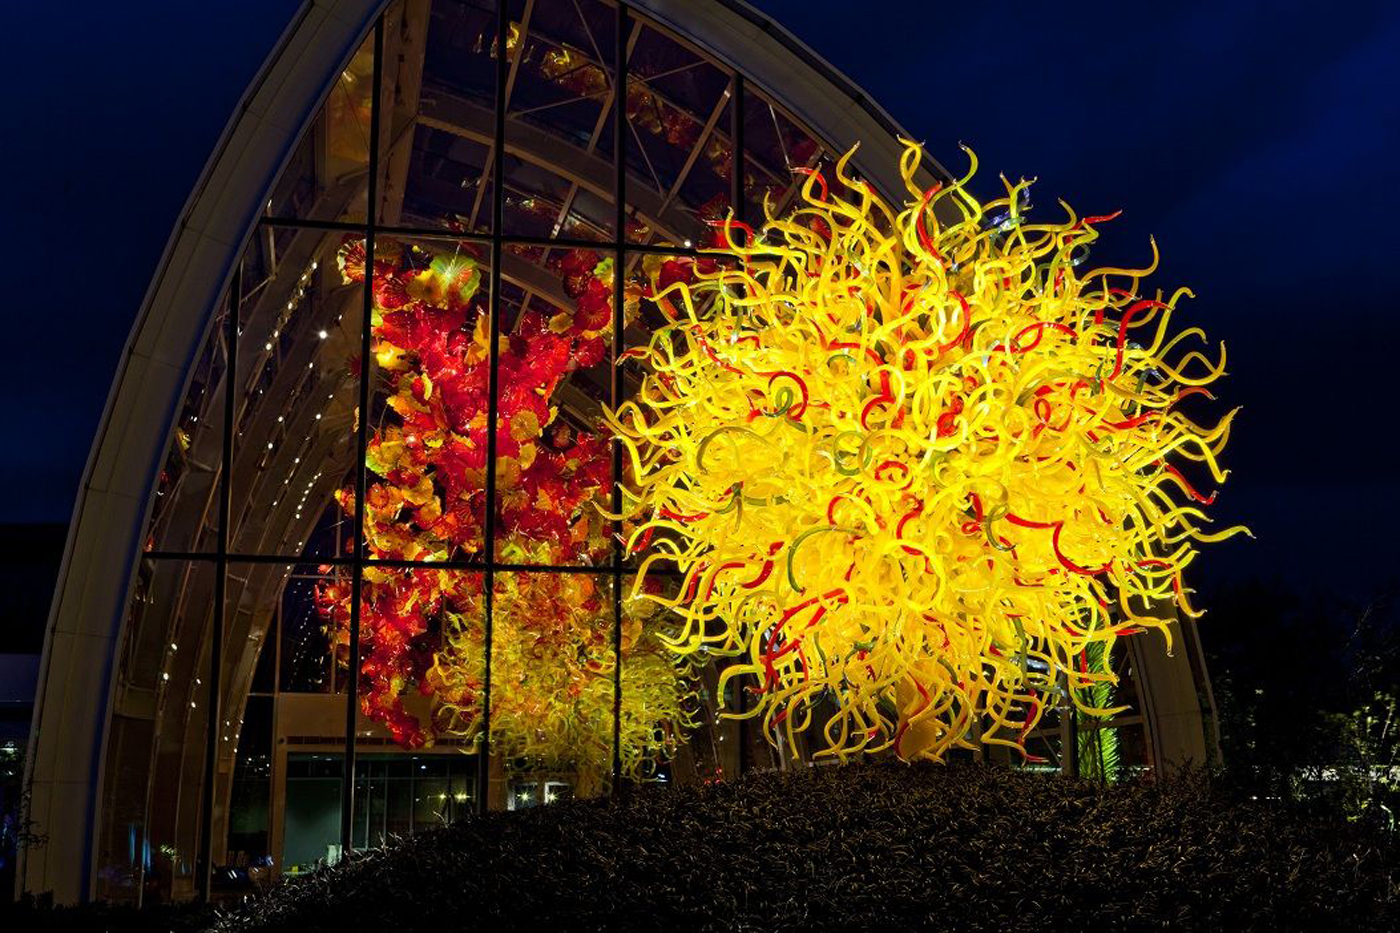 Seattle Local Business News And Data Construction Chihuly Garden And Glass Exhibition